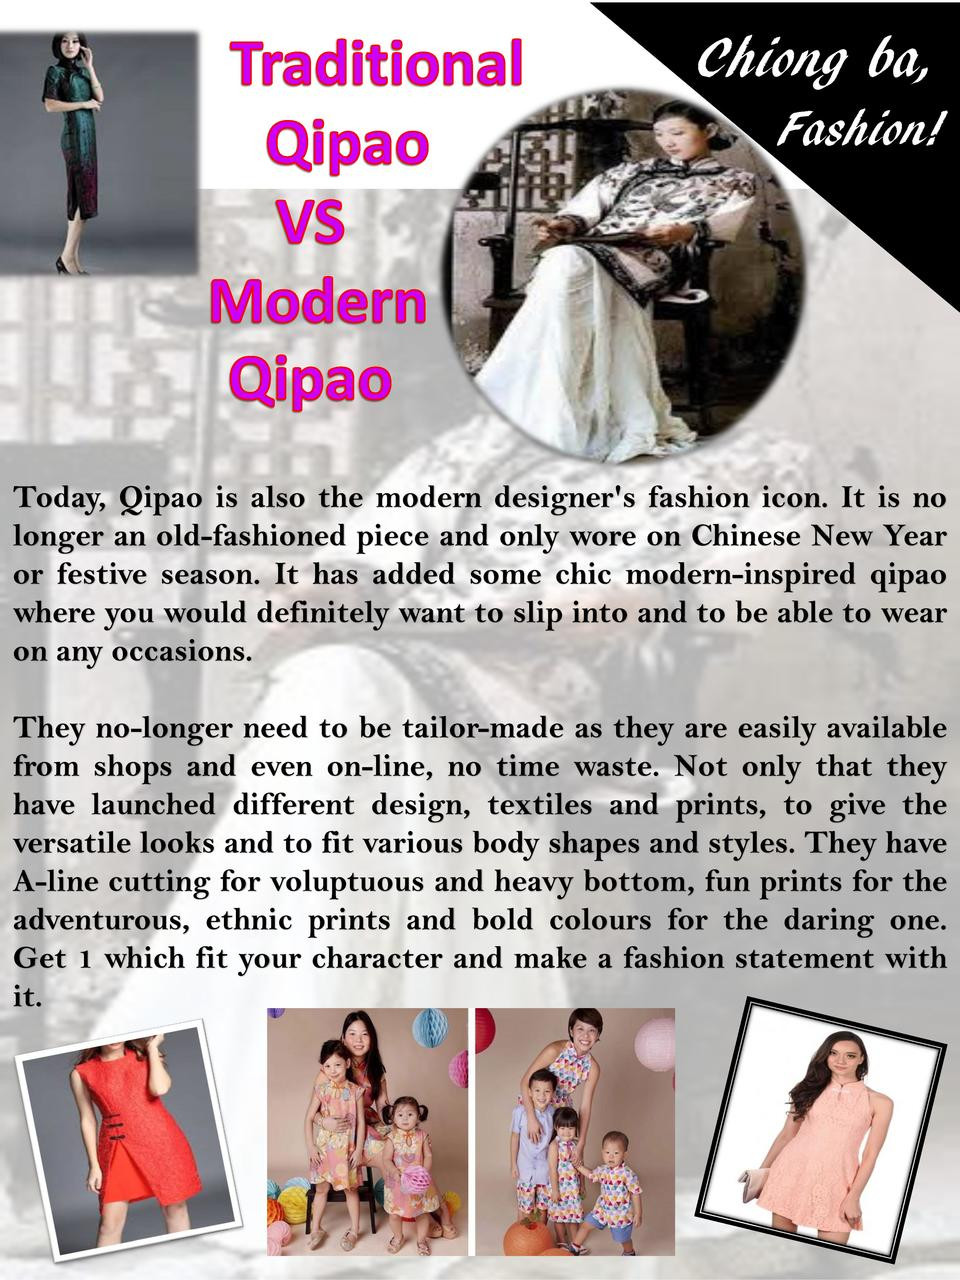 Chiong ba, Fashion   Today, Qipao is also the modern designer s fashion icon. It is no longer an old-fashioned piece and o...